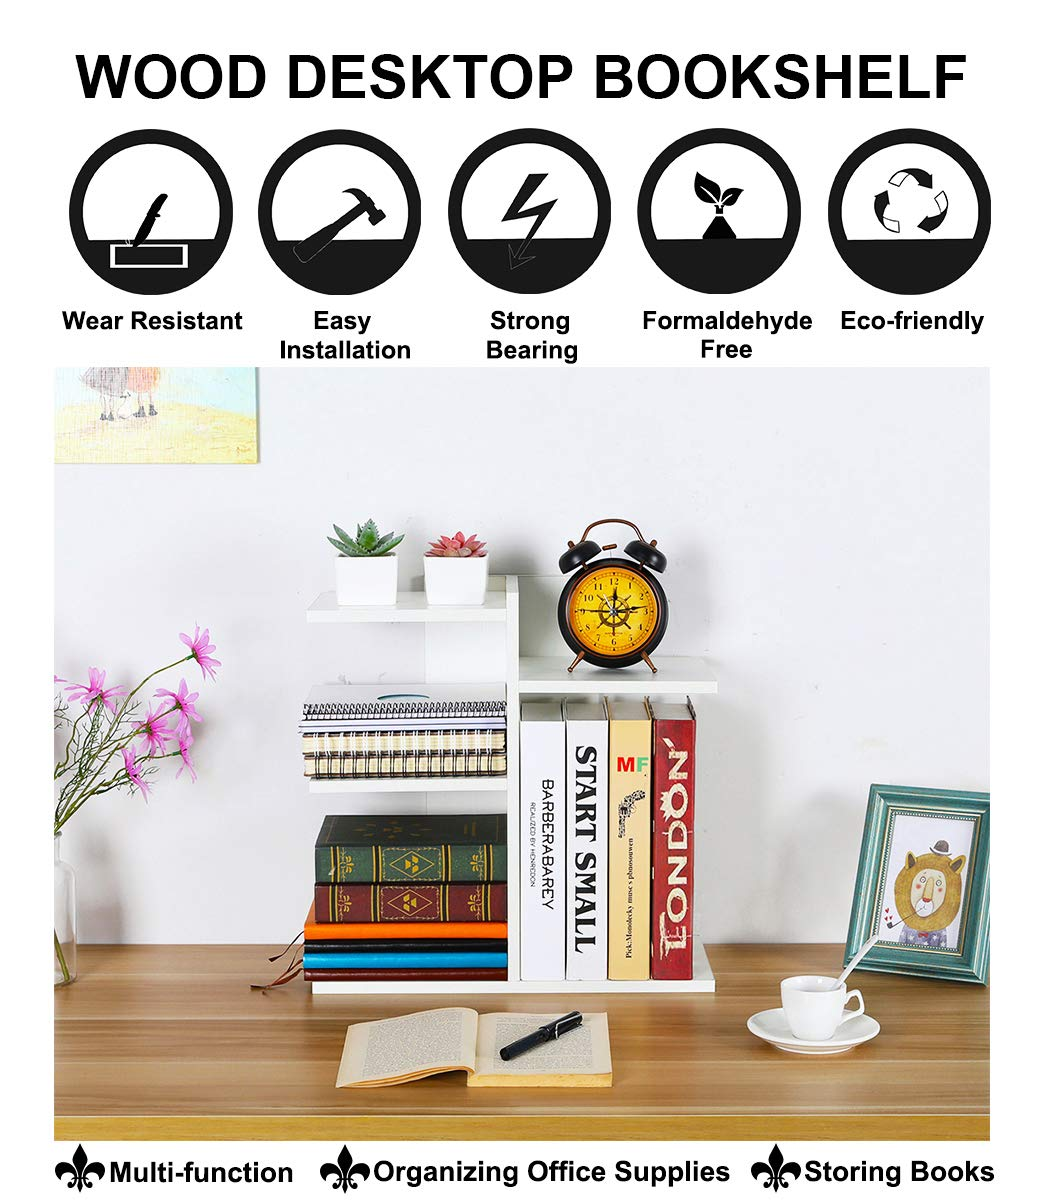 PAG Wood Desktop Bookshelf Assembled Countertop Bookcase Literature Holder Accessories Display Rack Office Supplies Desk Organizer, White by PAG (Image #2)